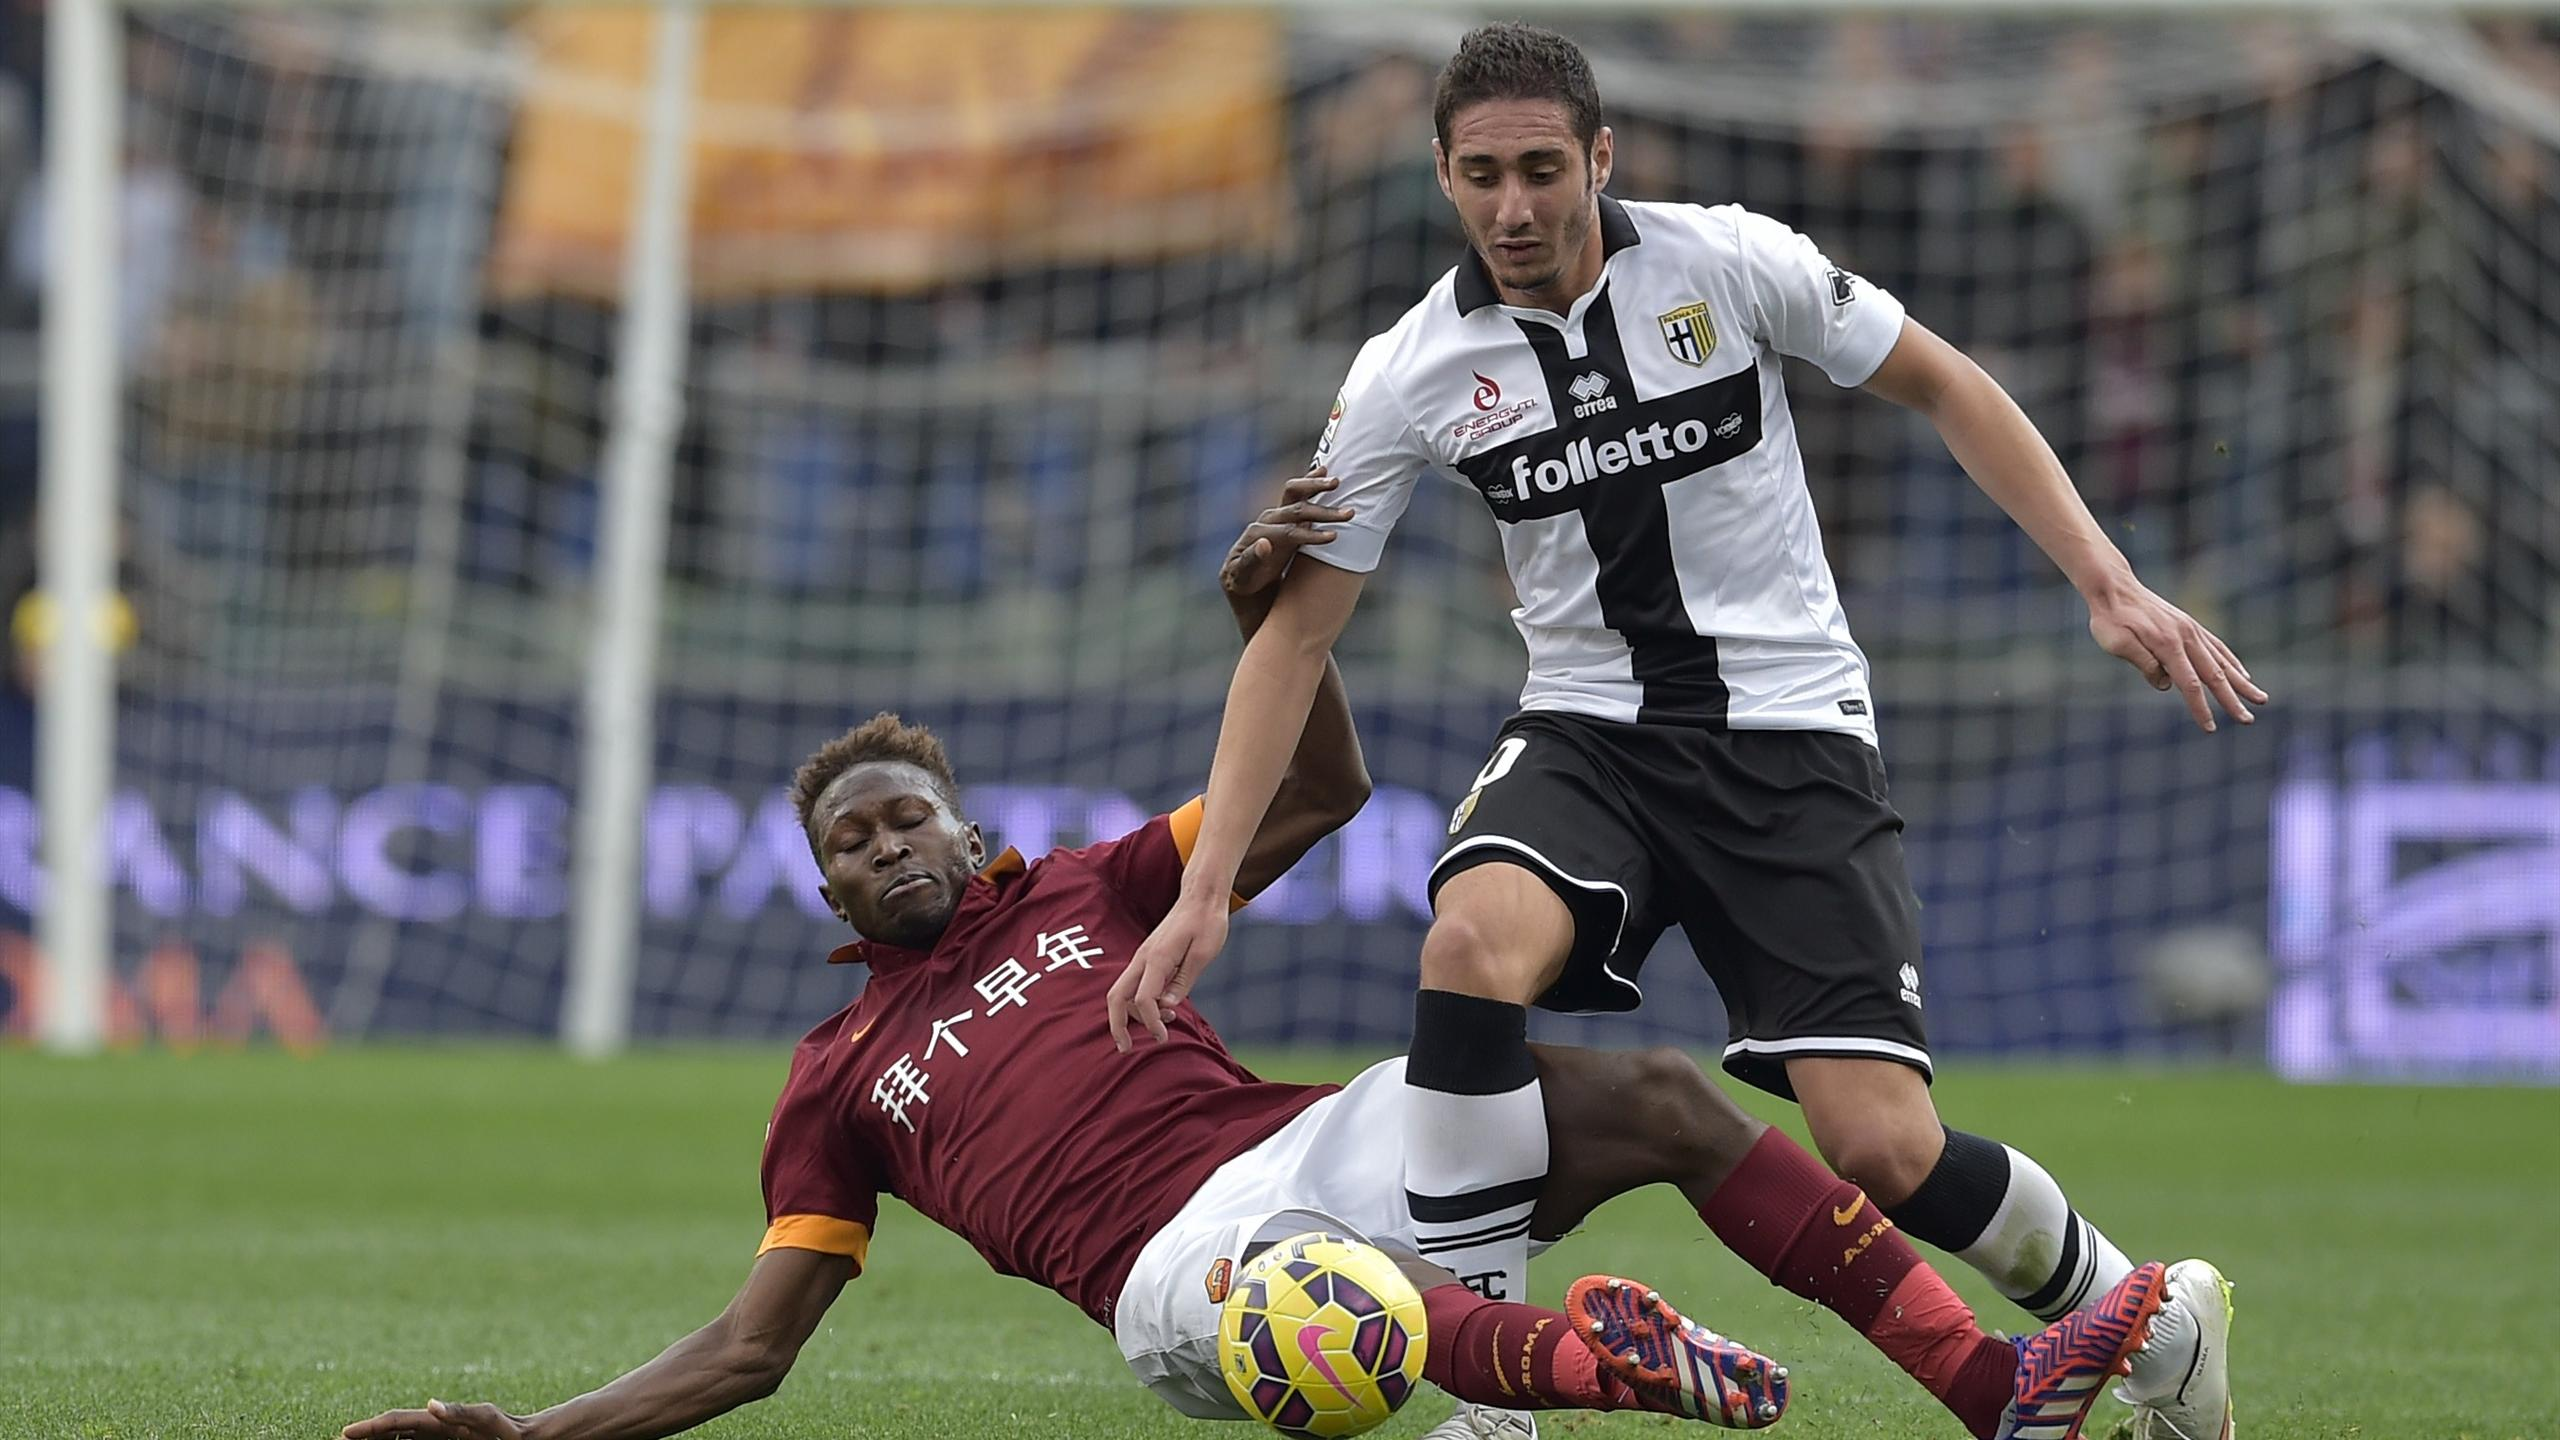 Video: AS Roma vs Parma